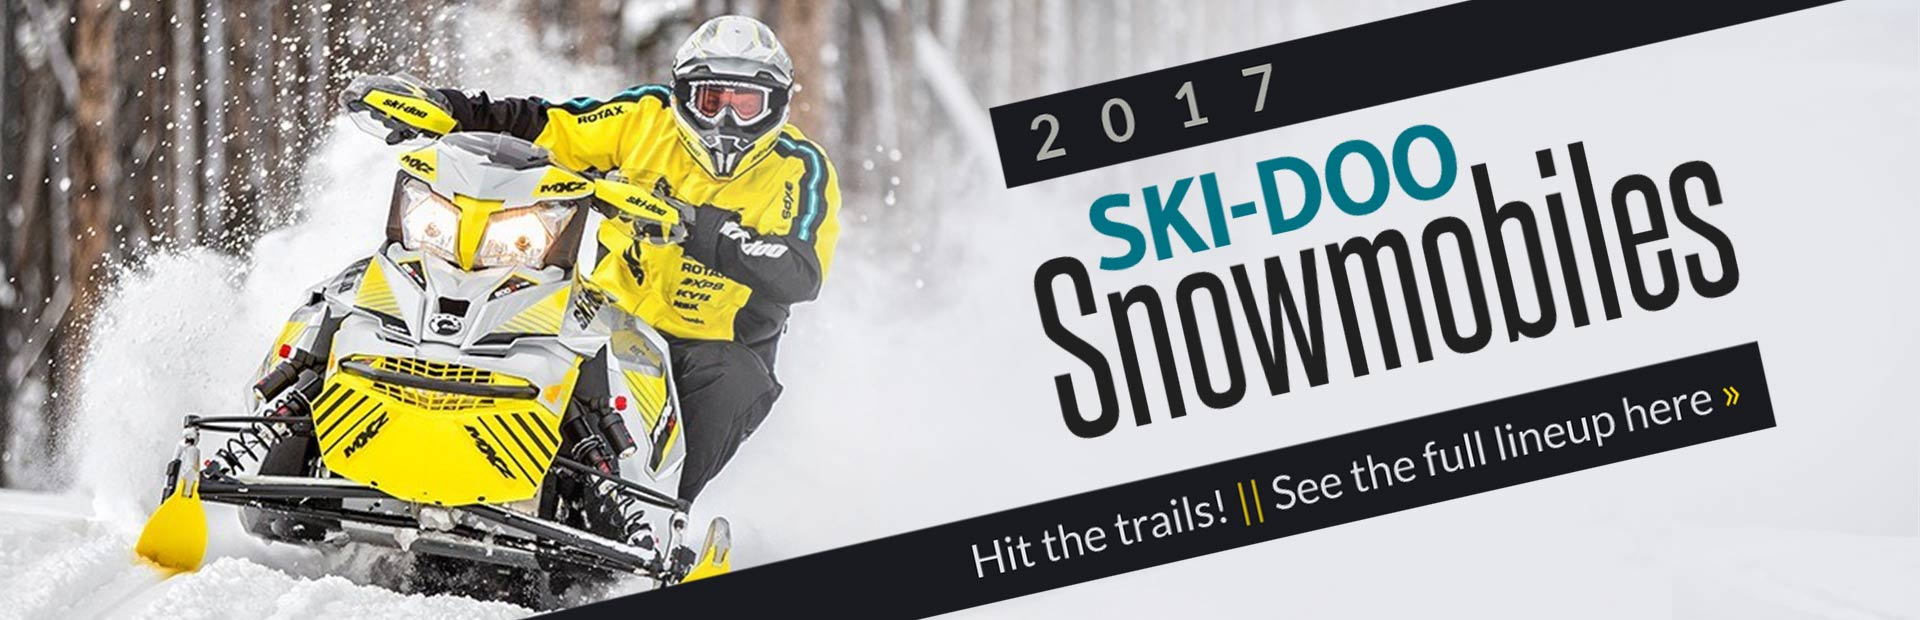 2017 Ski-Doo Snowmobiles: Click here to see the full lineup!